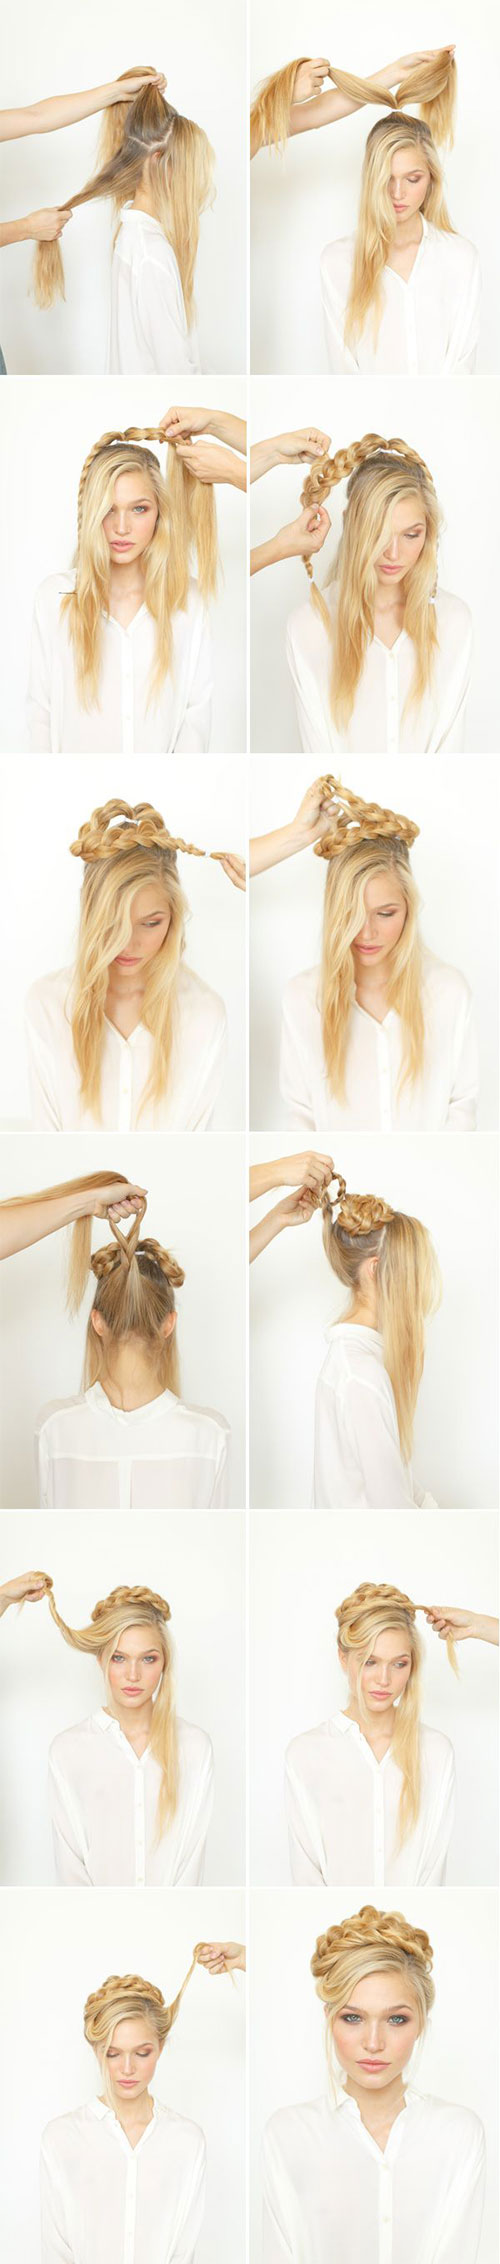 15-Step-By-Step-Summer-Hairstyle-Tutorials-For-Beginners-Learners-2015-10